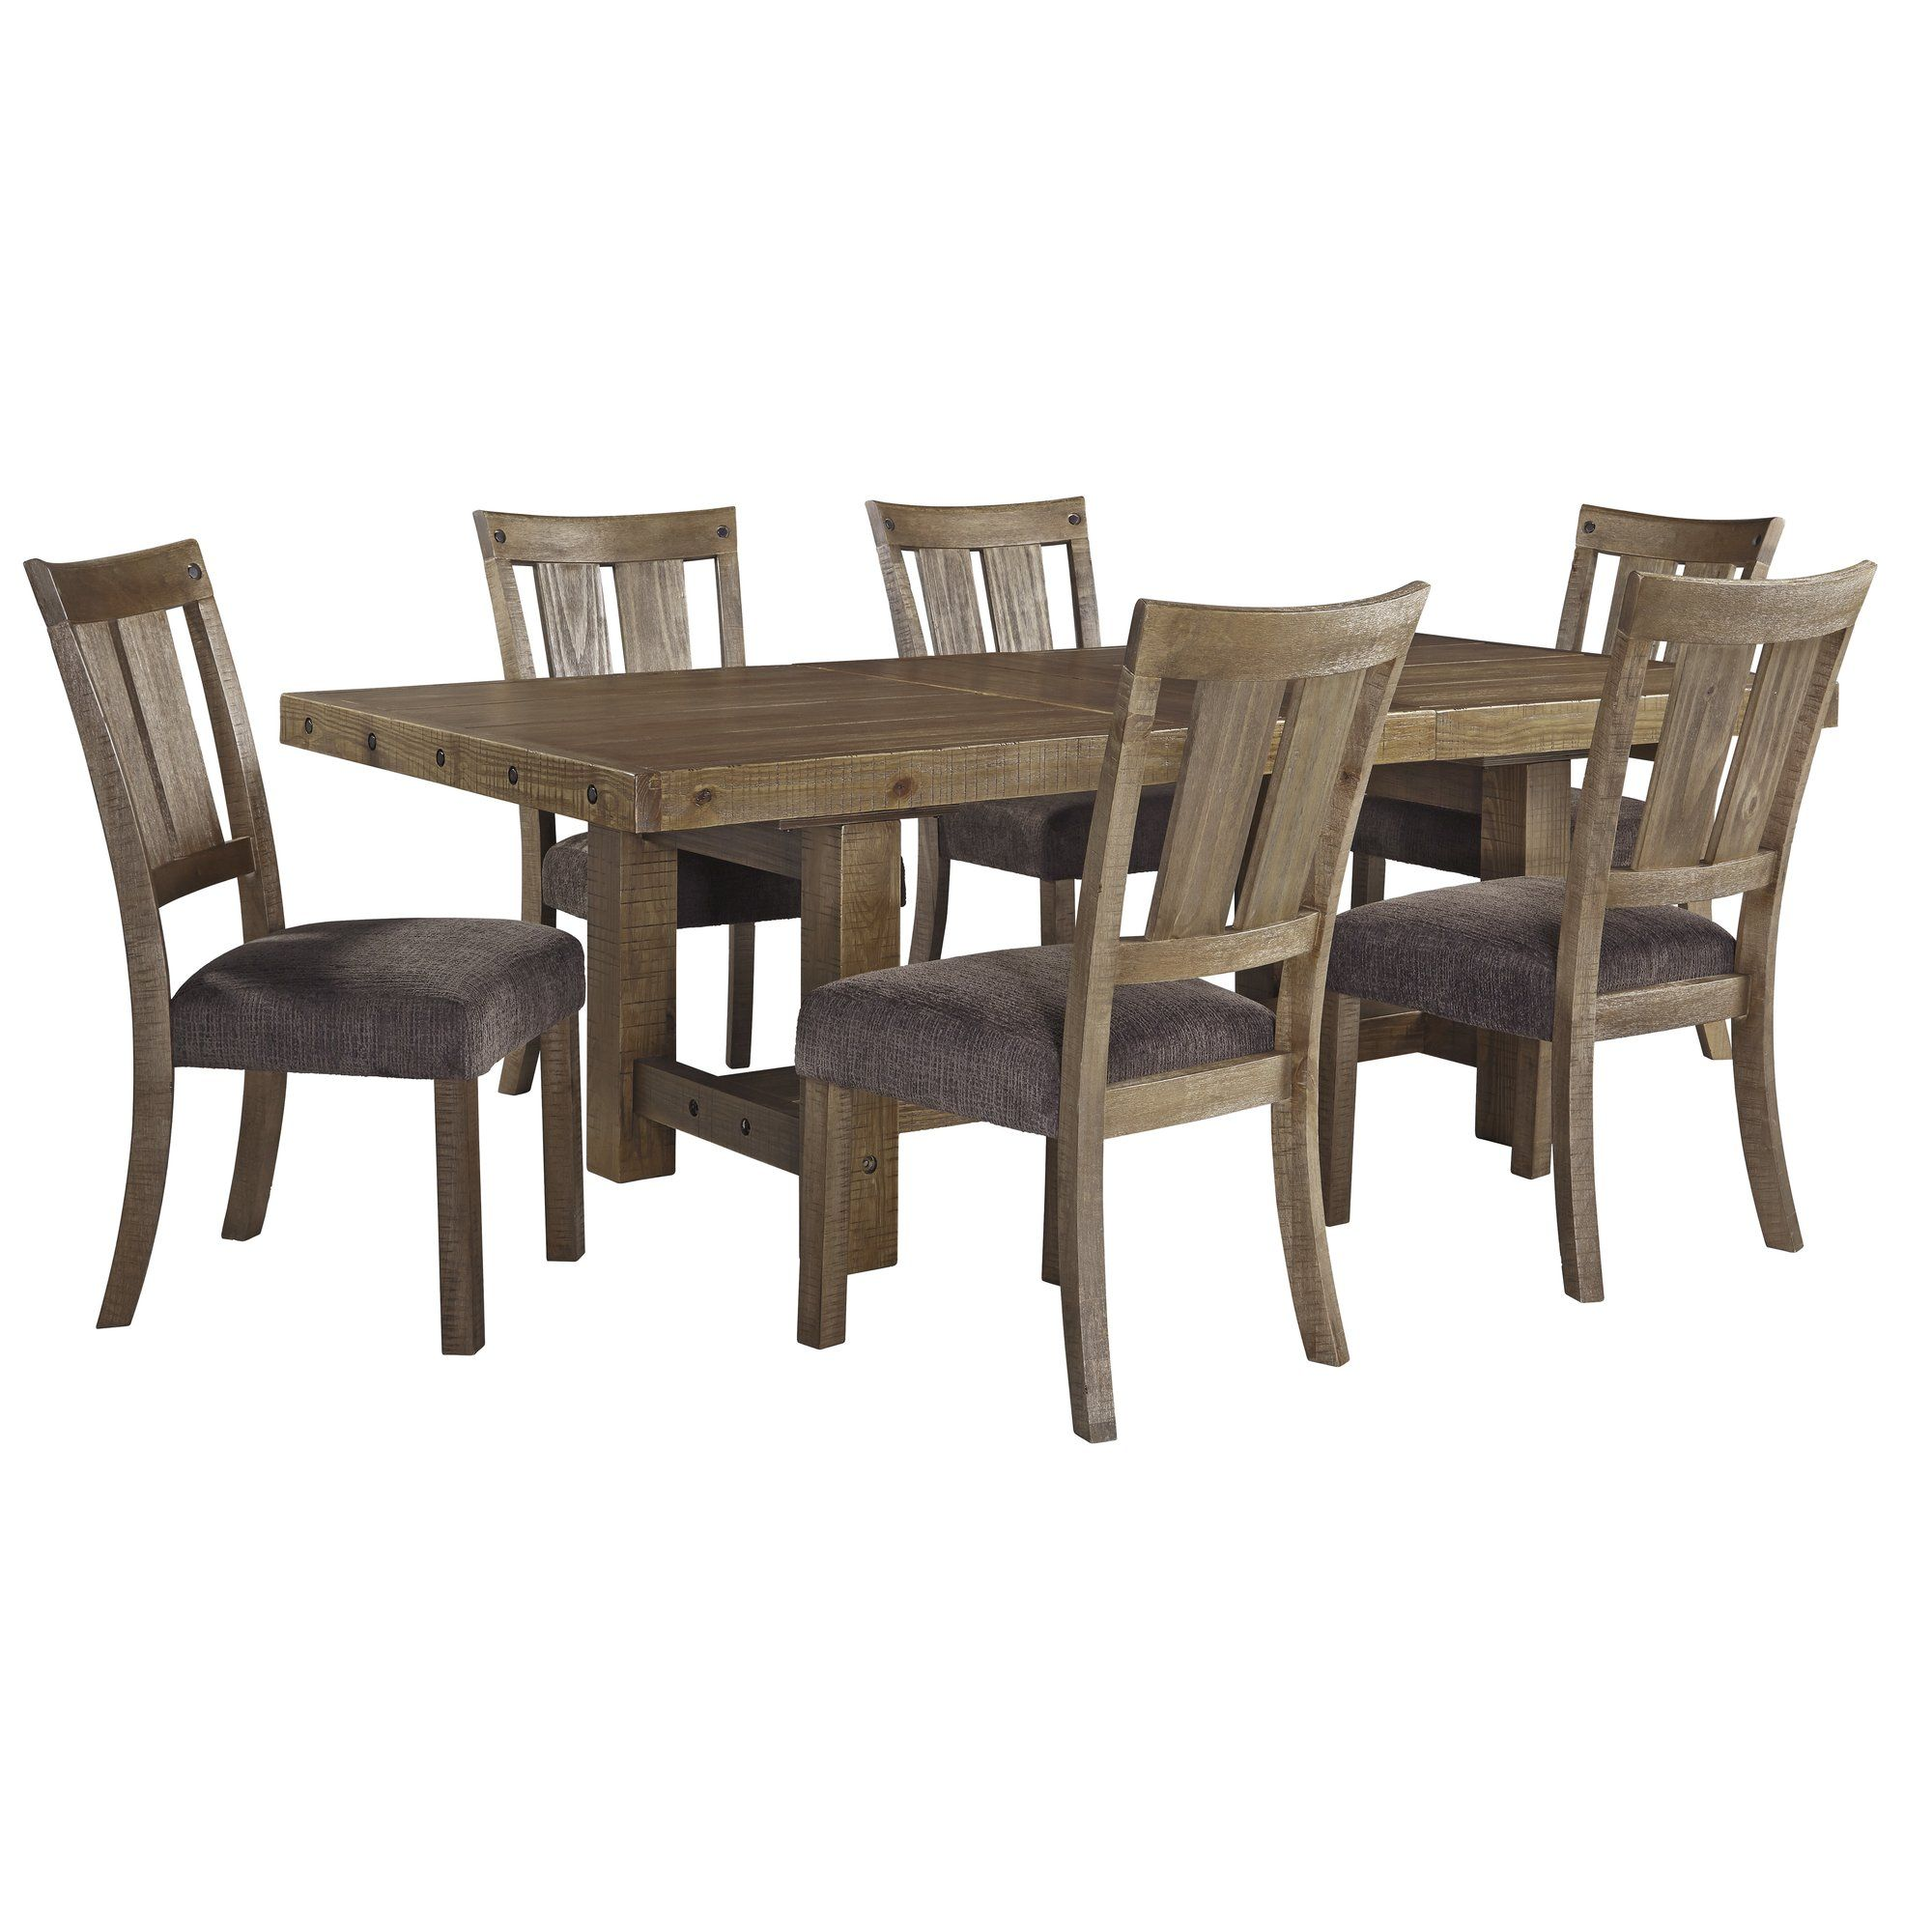 Etolin Extendable Dining Table Dining Room Sets Dining Table Extendable Dining Table